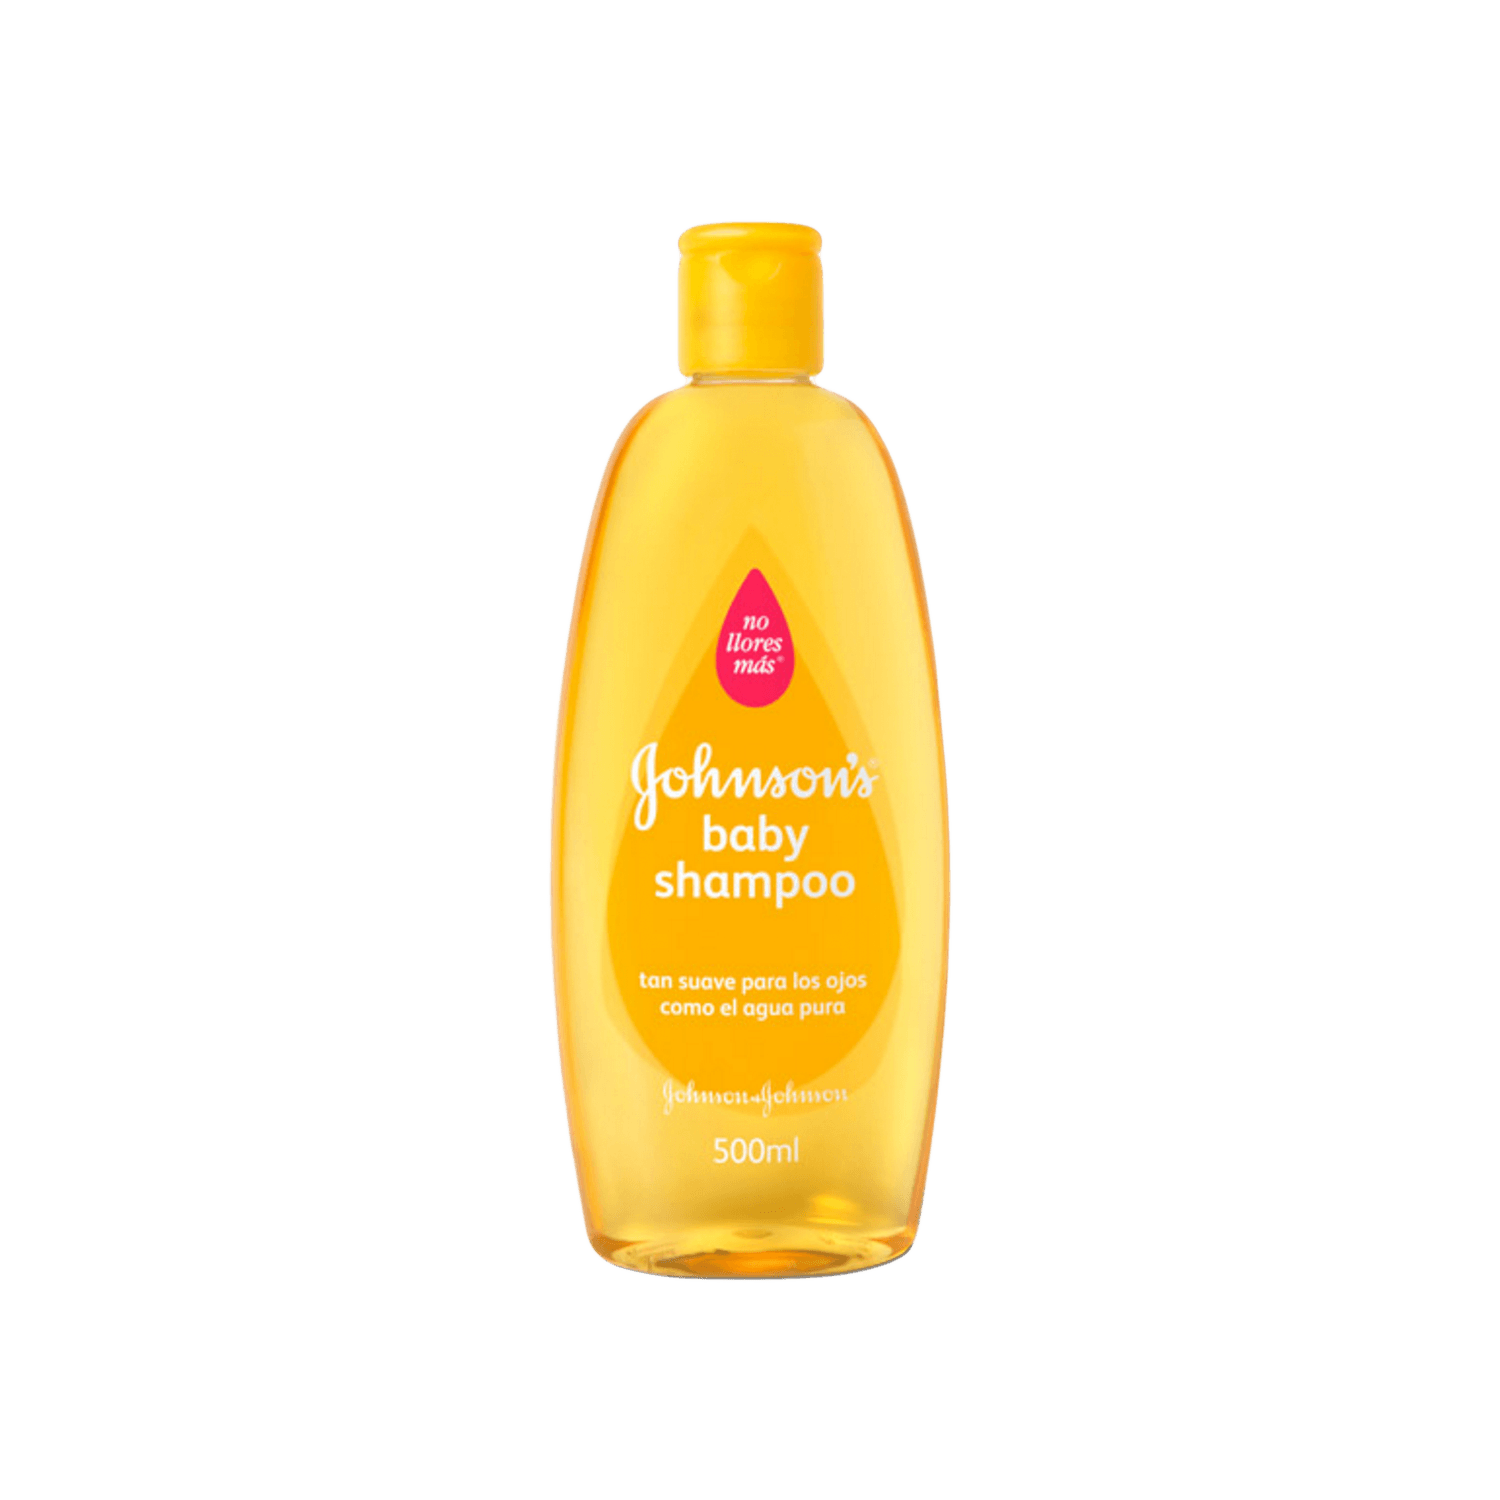 Shampoo bottle png. Johnson s baby ml